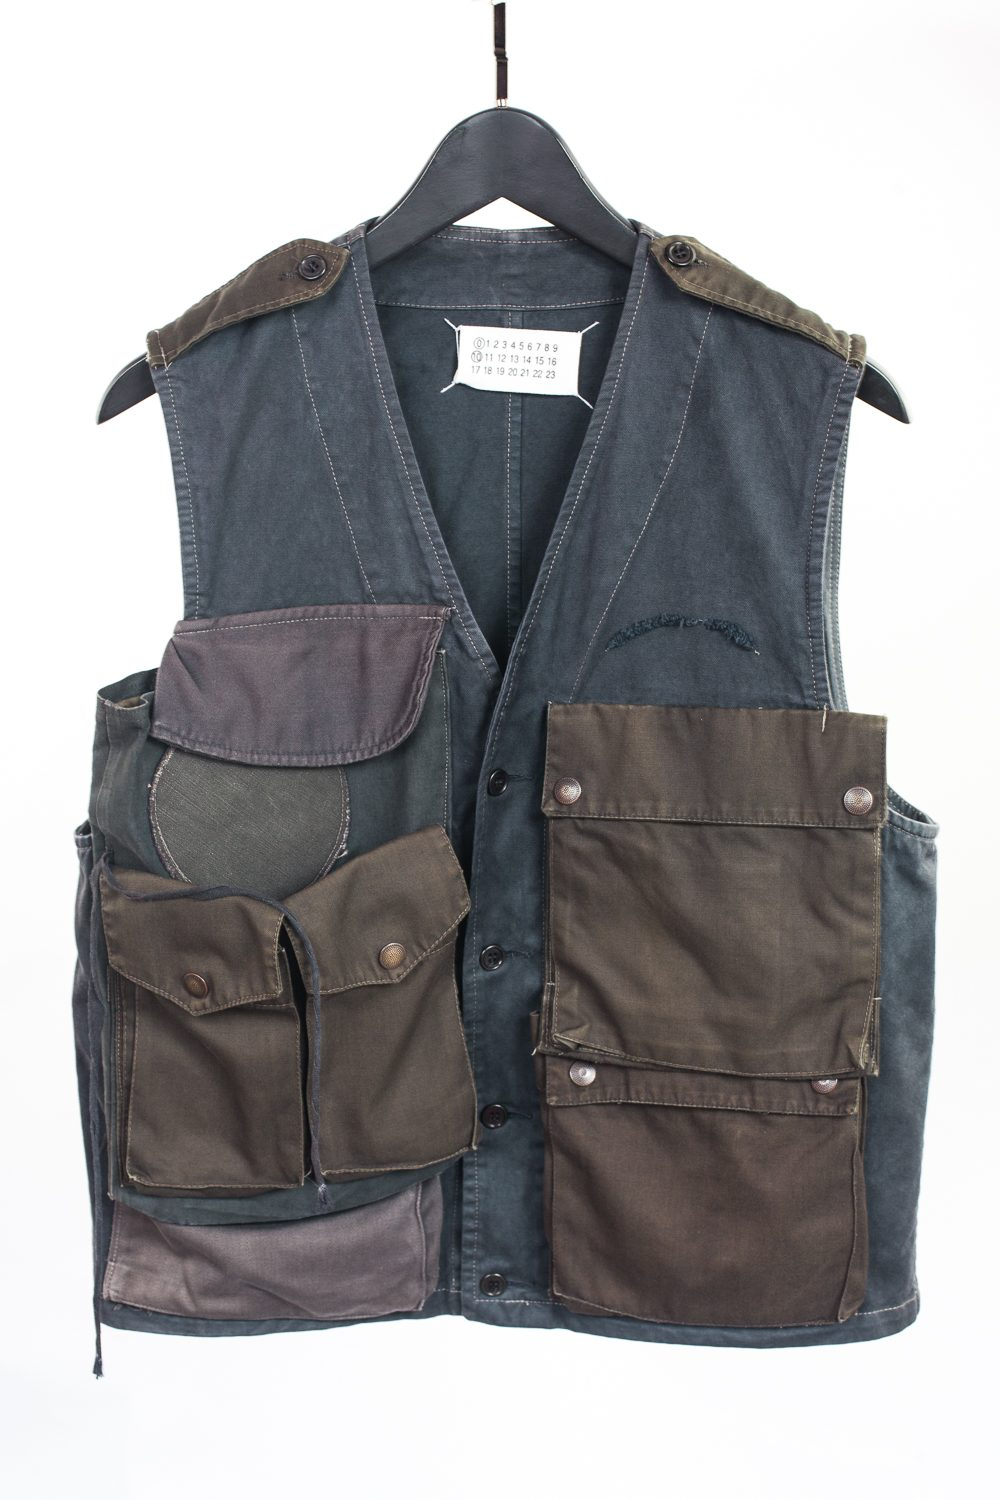 FW01 Artisanal Reconstructed Military Cargo Vest